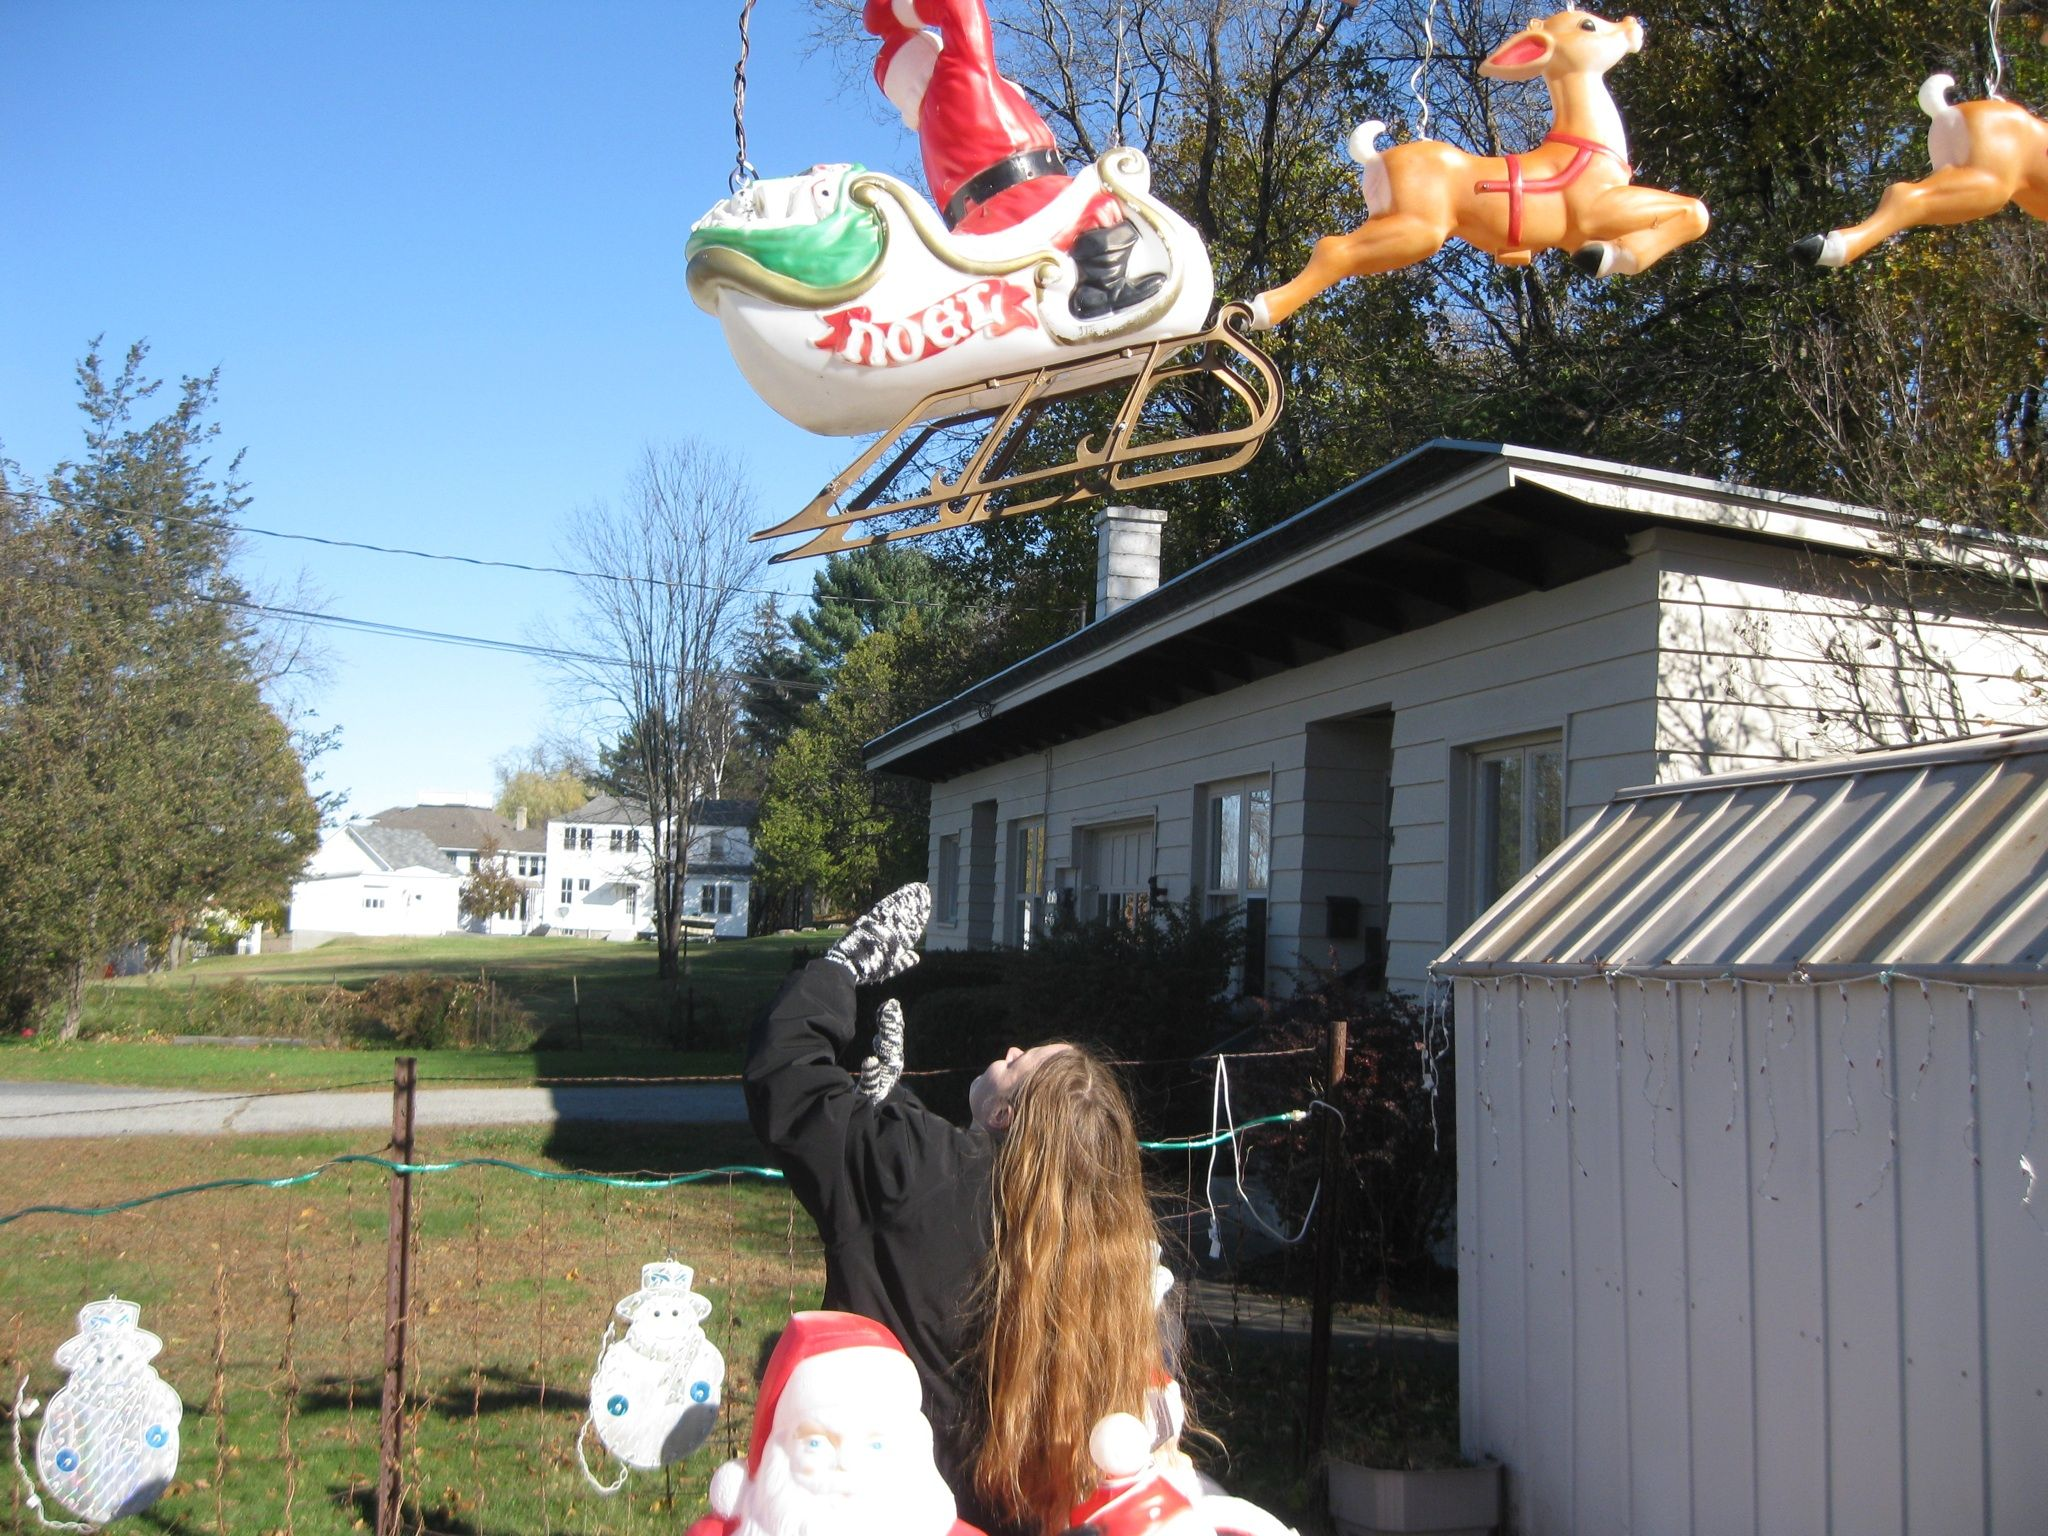 Image Result For How To Make Blow Mold Santa And Reindeer Fly Site Www Planetchristmas Com Santa And Reindeer Flying Reindeer Reindeer And Sleigh